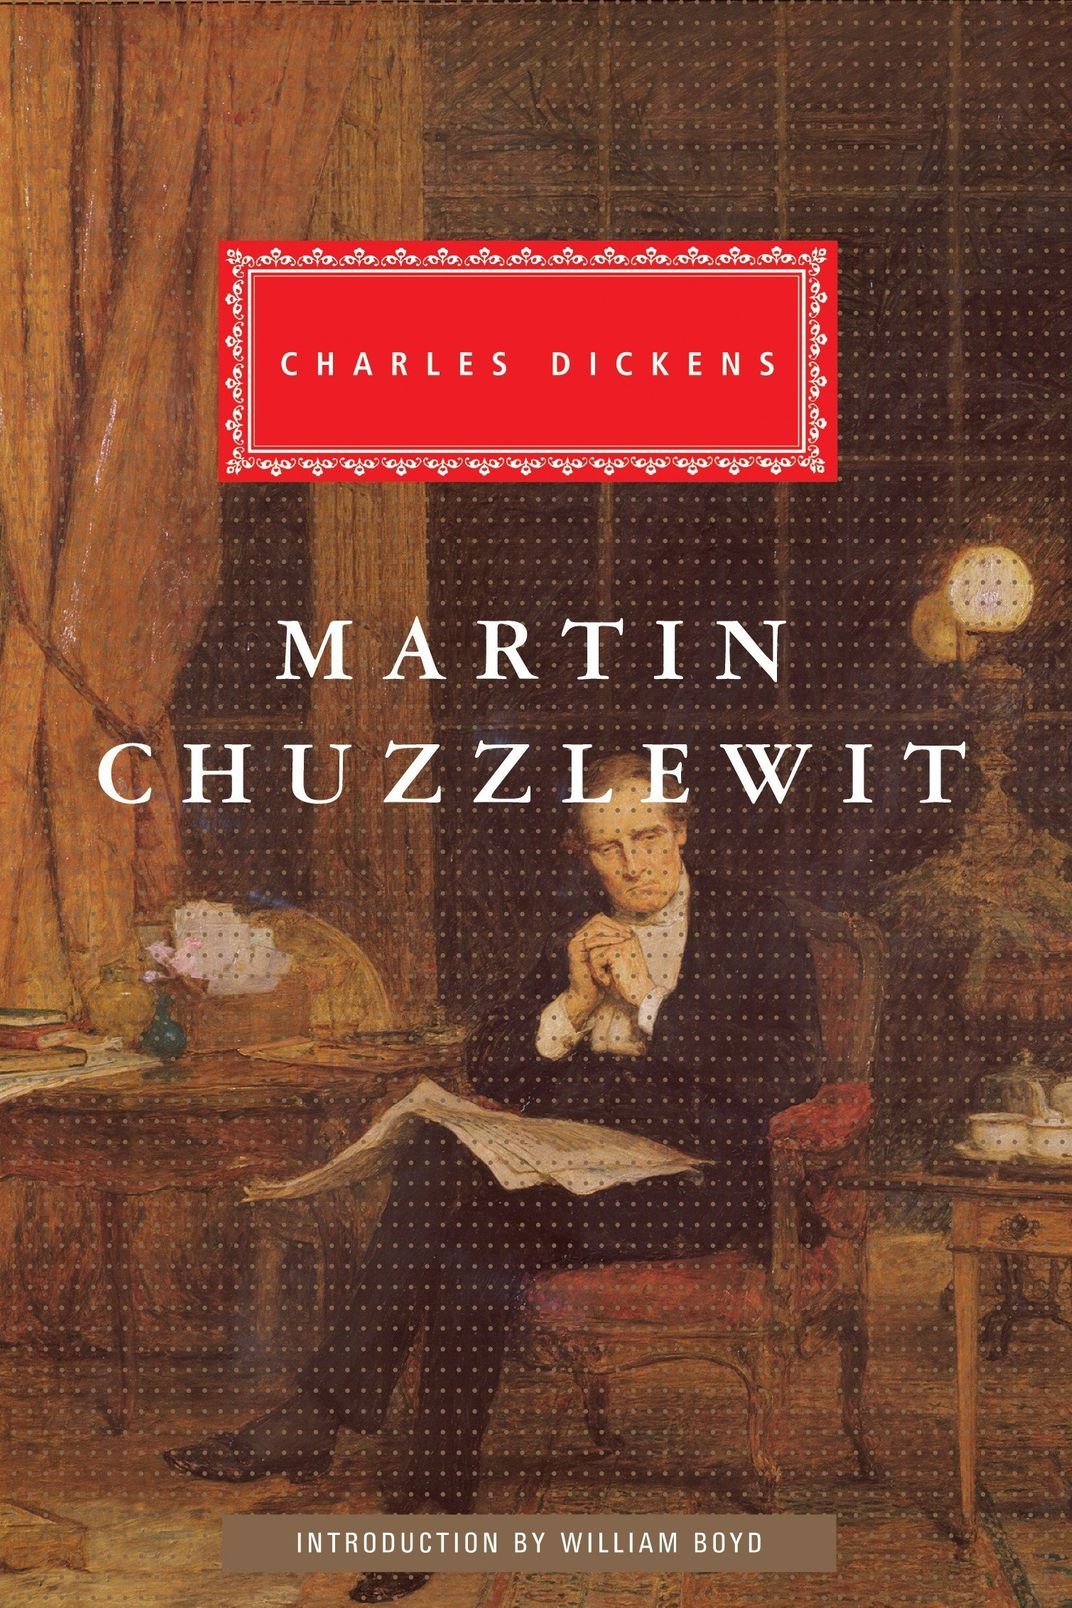 Martin Chuzzlewit, by Charles Dickens